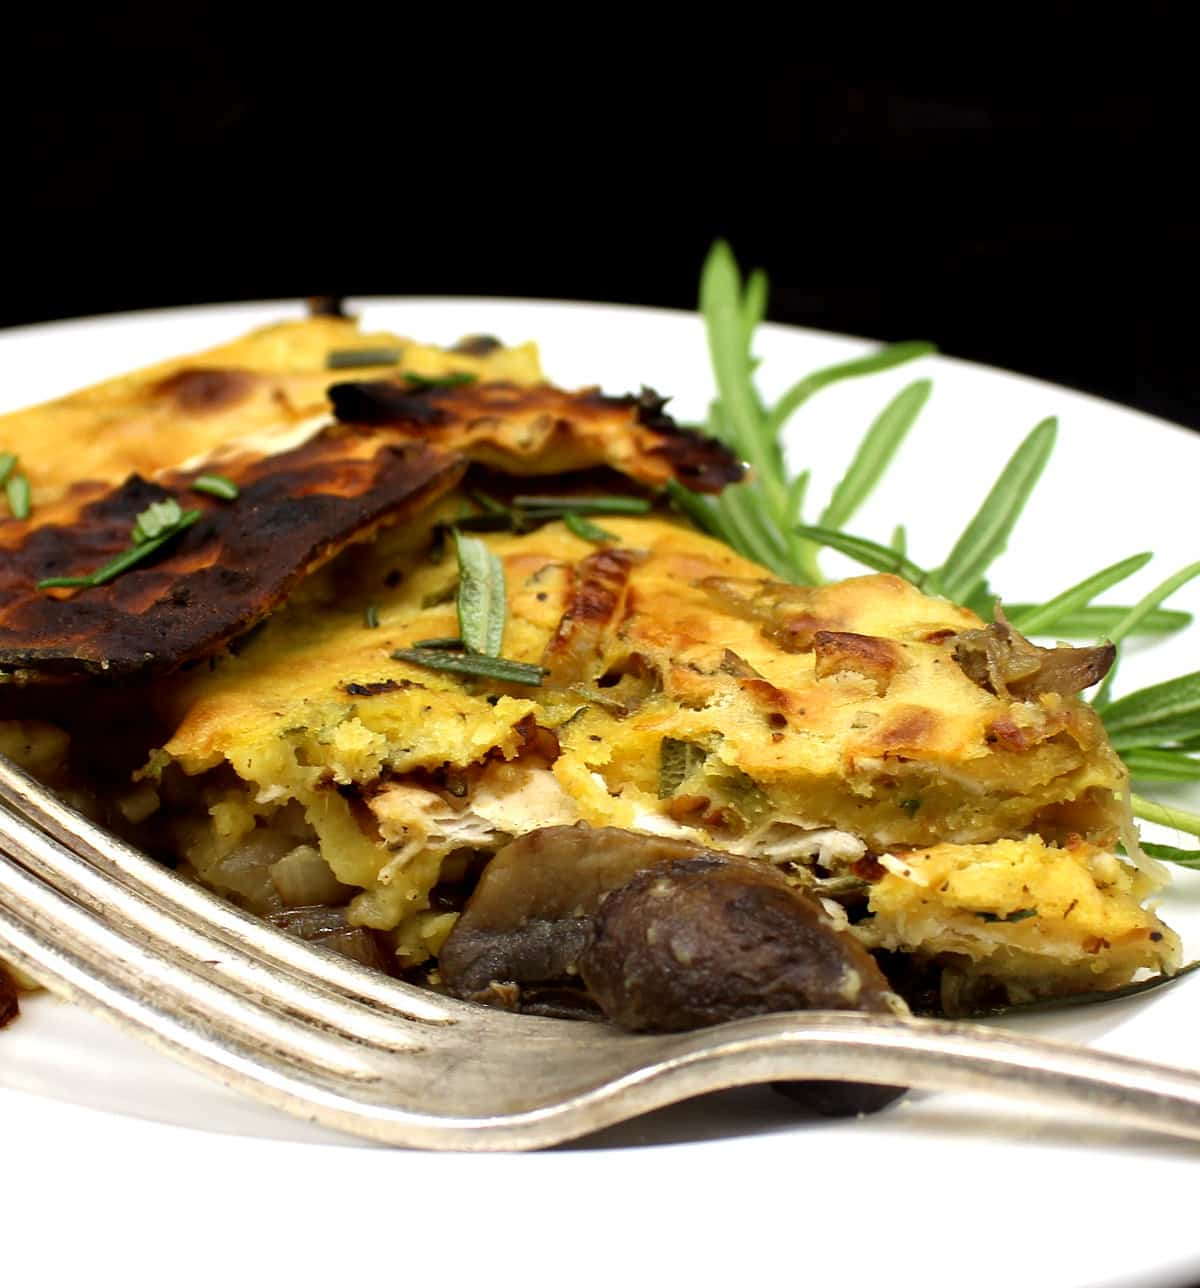 A closeup photo of a slice of vegan matzo frittata with rosemary and a fork.